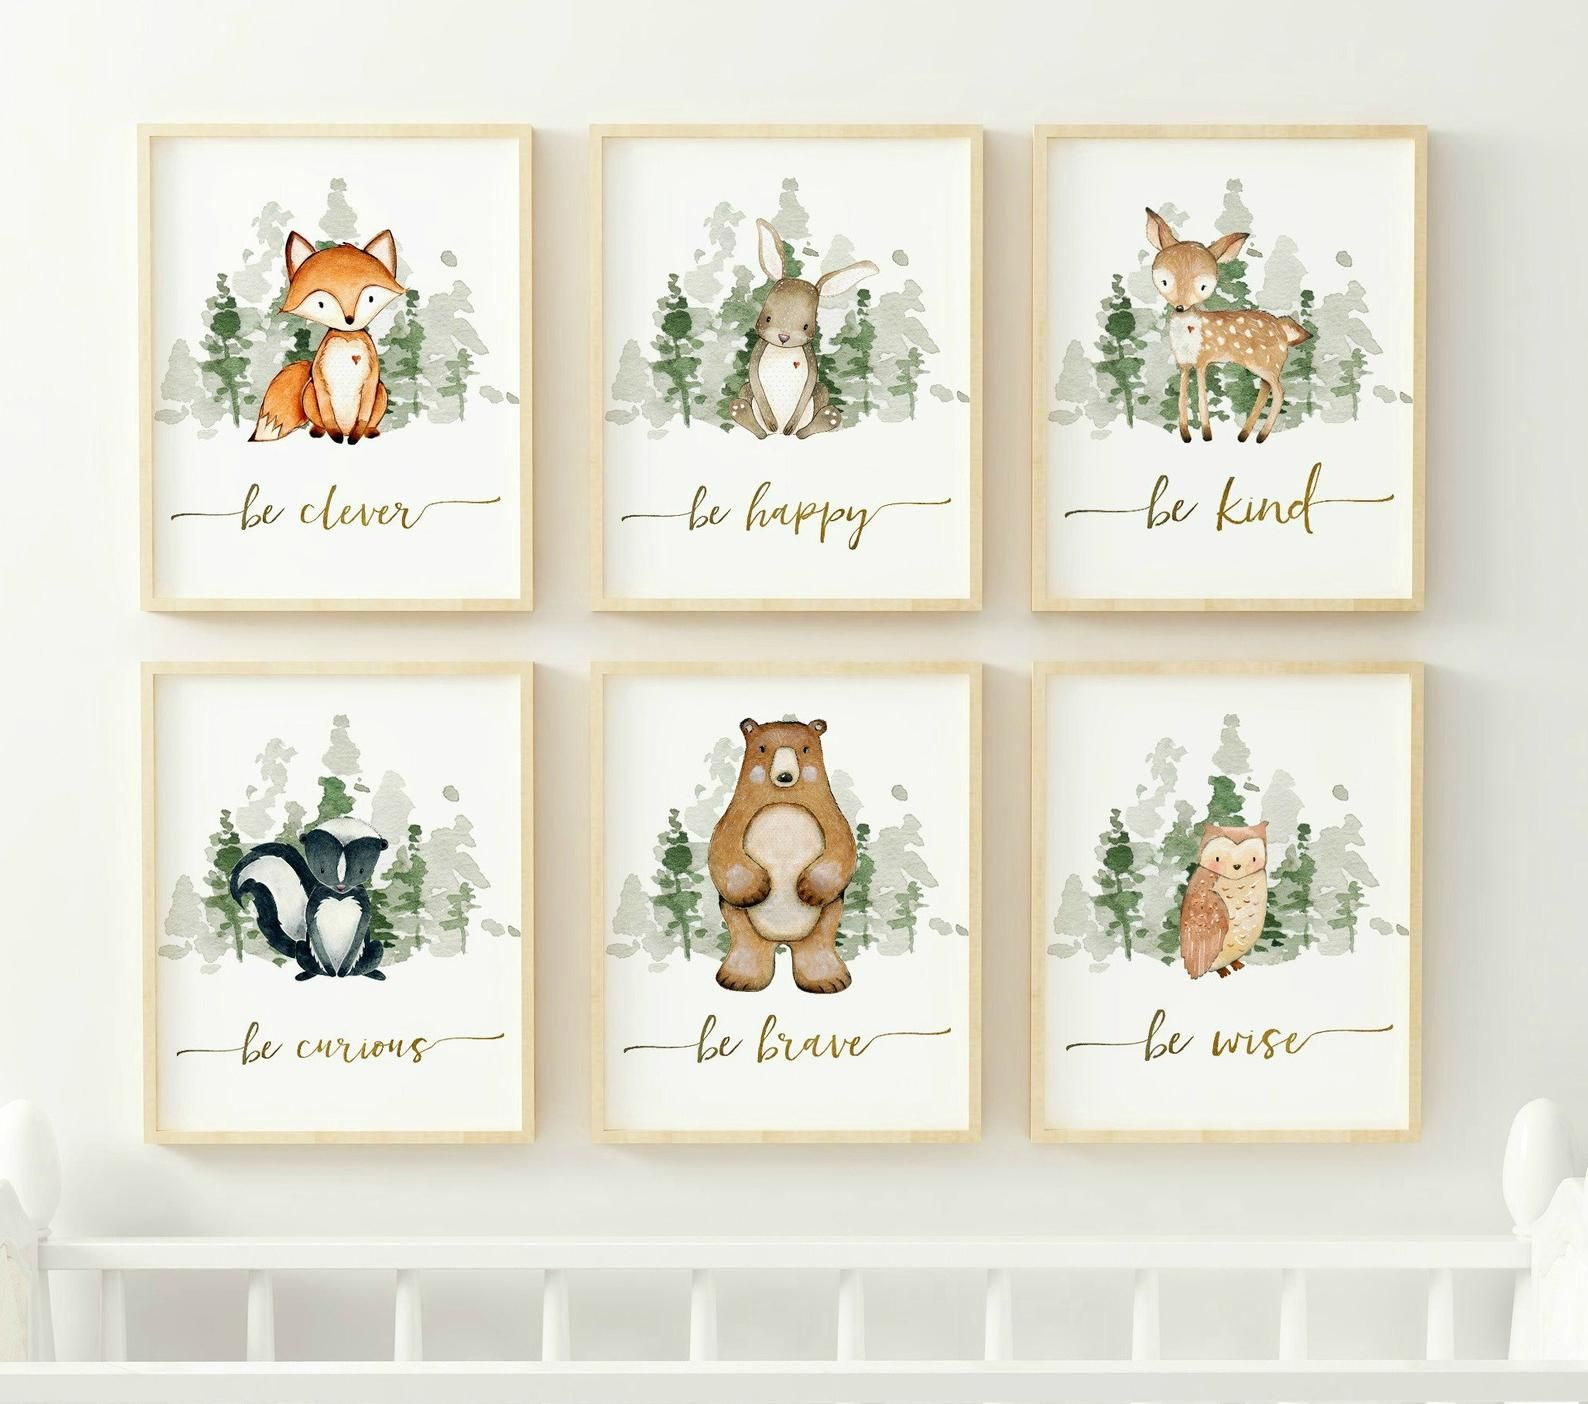 Woodland Nursery Prints, Woodland Nursery Decor, Boy Wall Art, Boy Nursery Prints, Woodland Animal Prints, Printable Wall Art